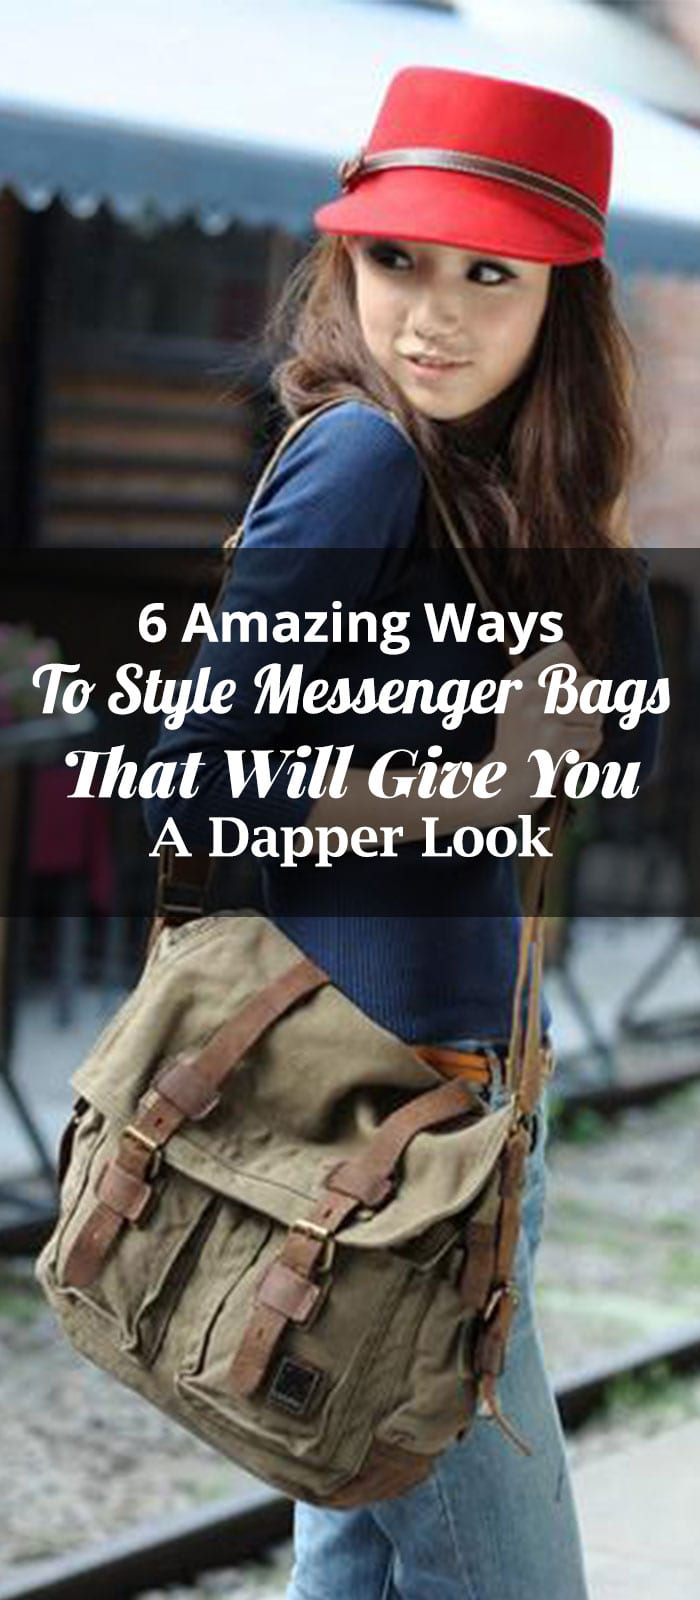 6 Amazing Ways To Style Messenger Bags That Will Give You A Dapper Look